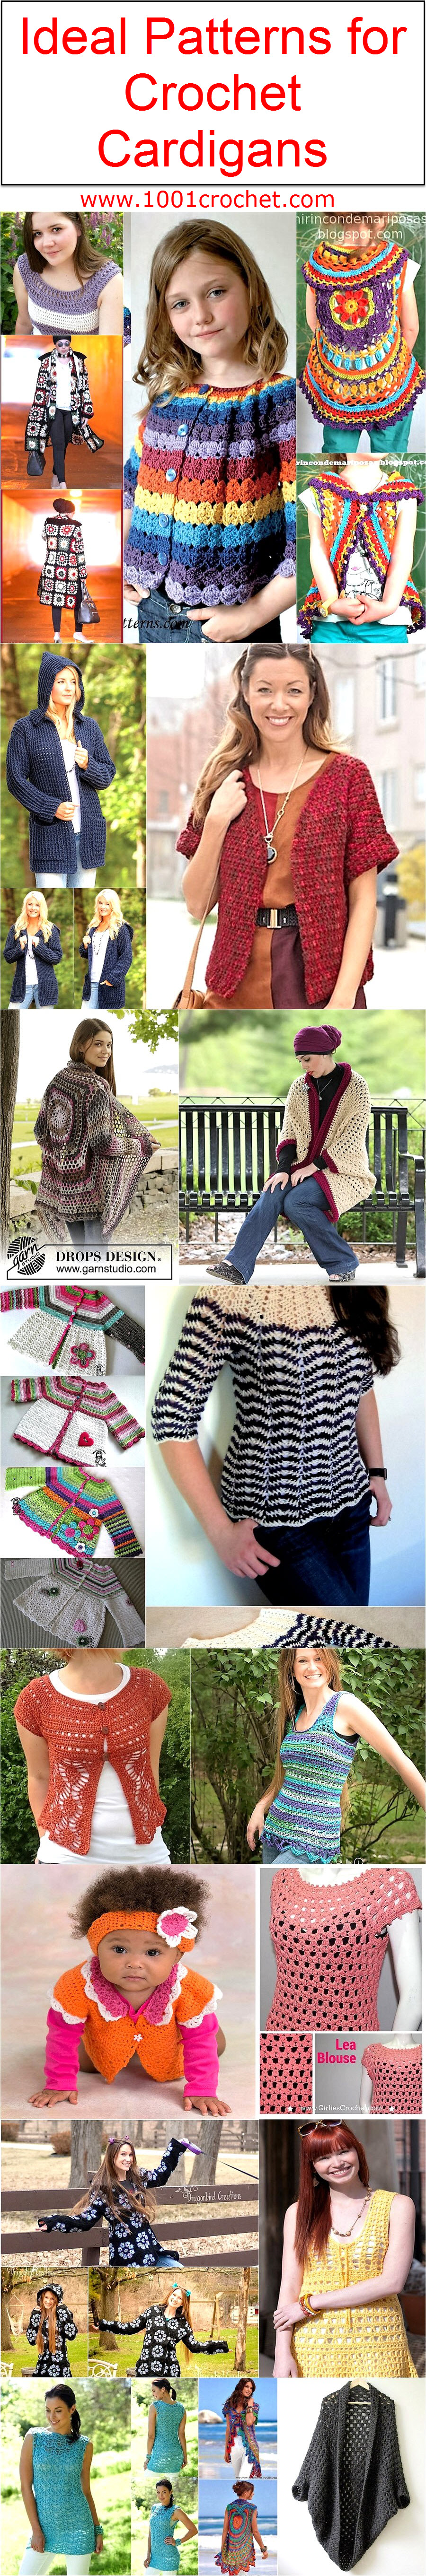 ideal-patterns-for-crochet-cardigans